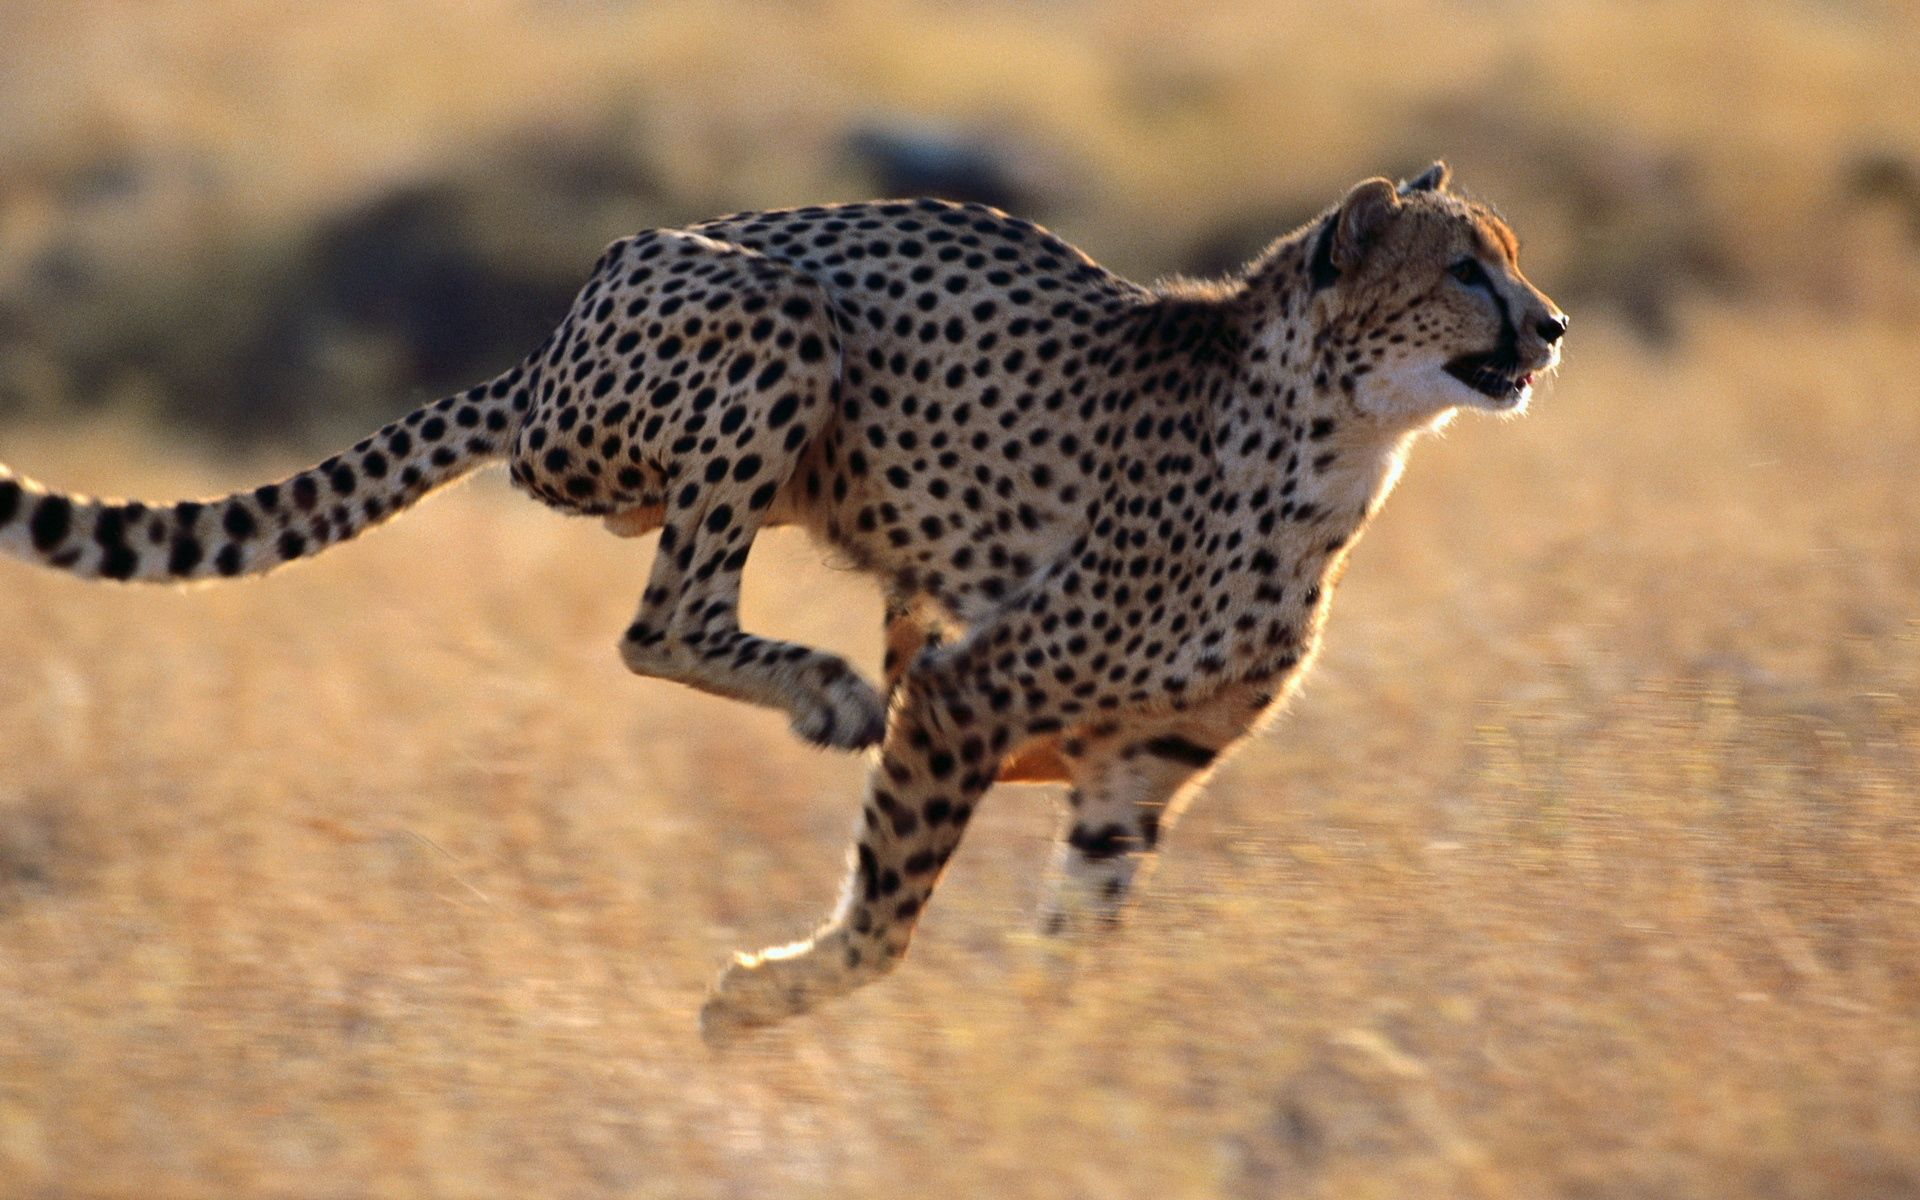 131918 download wallpaper Animals, Cheetah, Speed, Run, Running screensavers and pictures for free